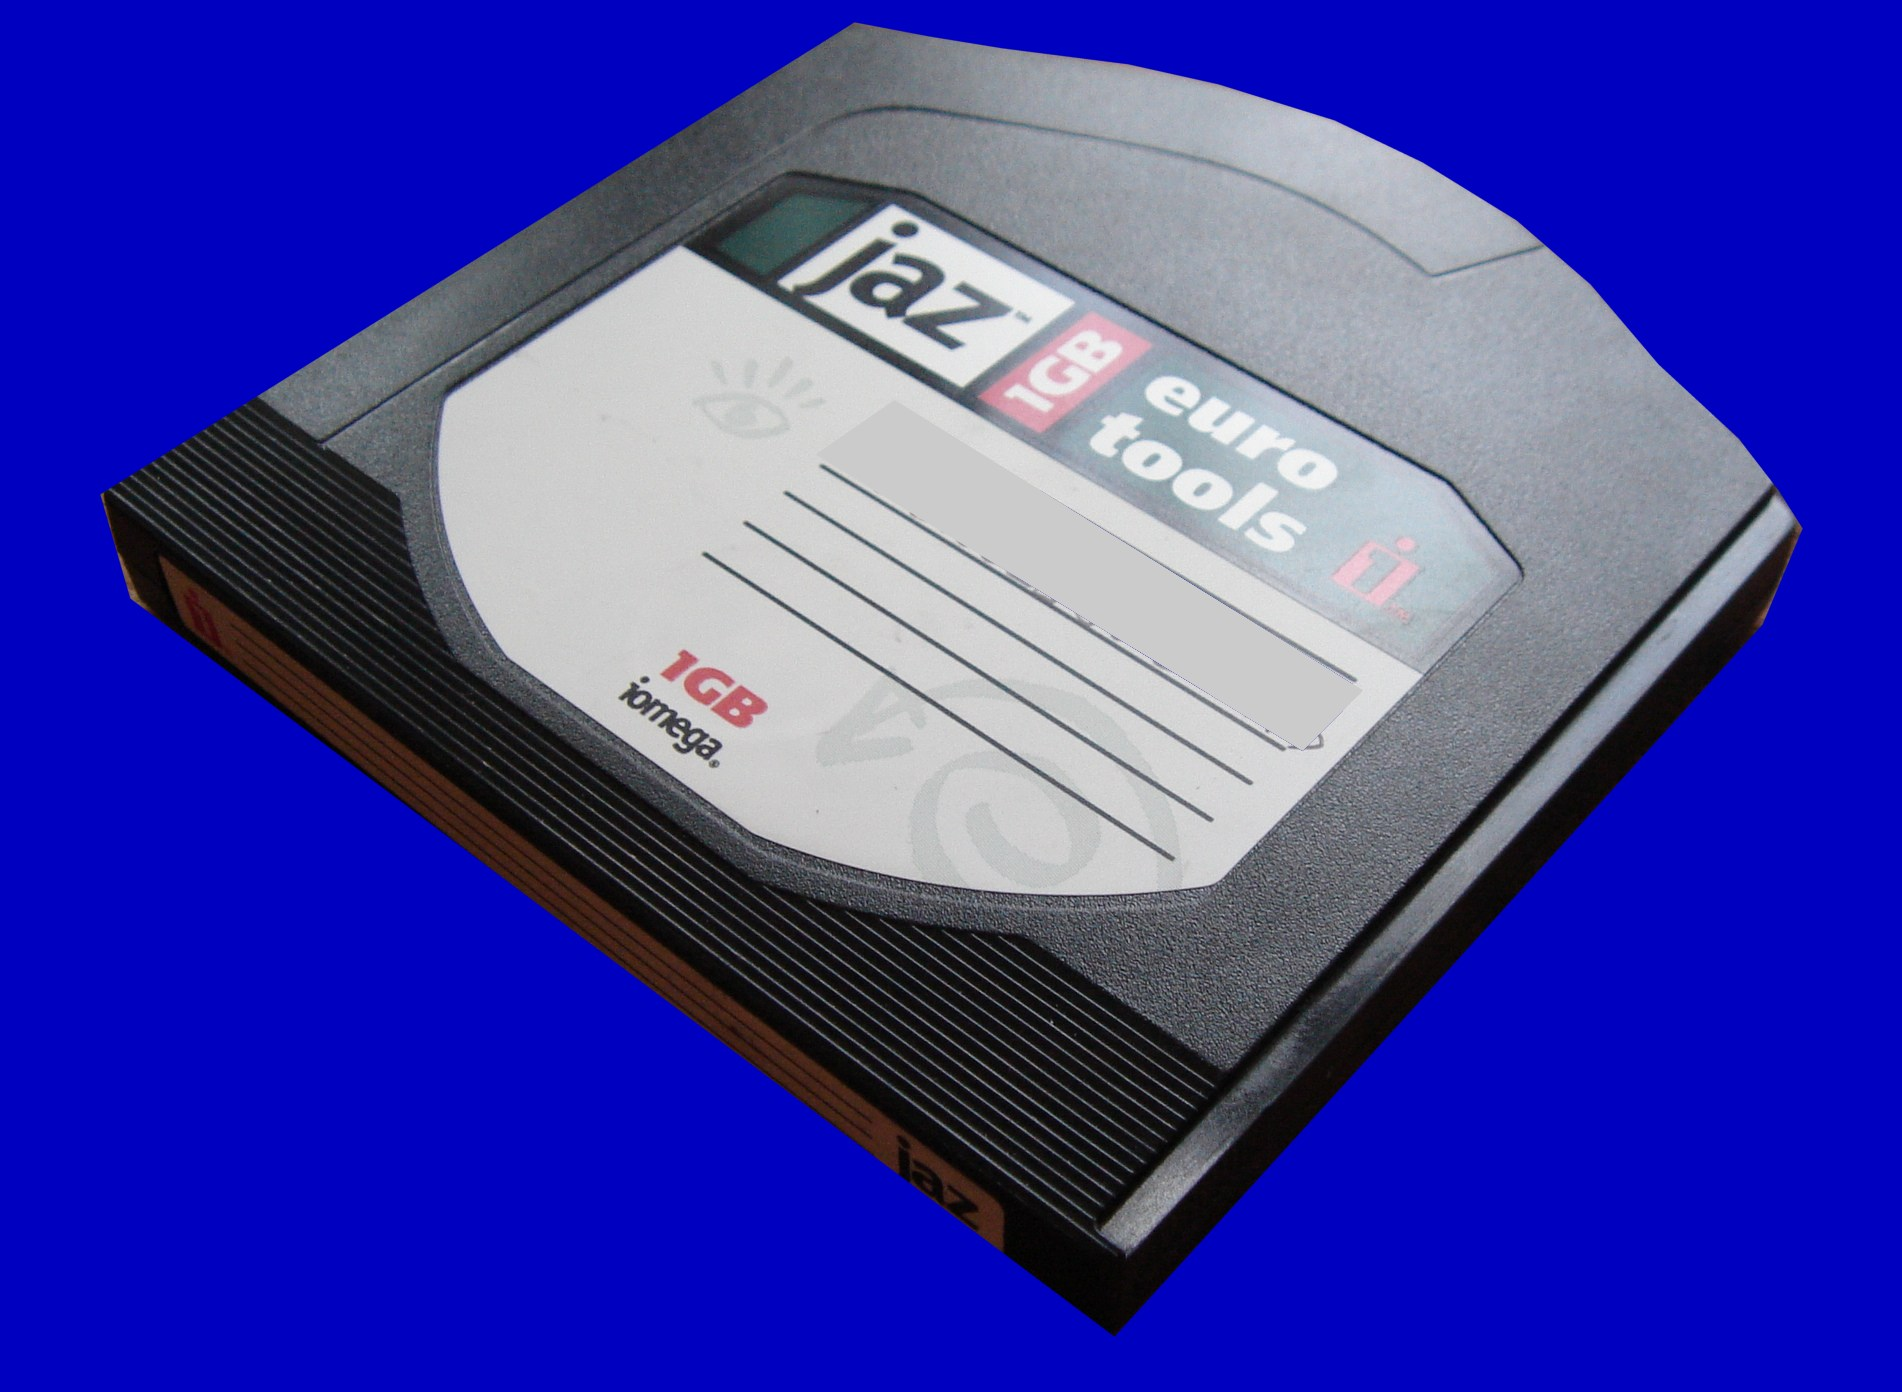 A Backup Jaz disk 1GB laid on its back.